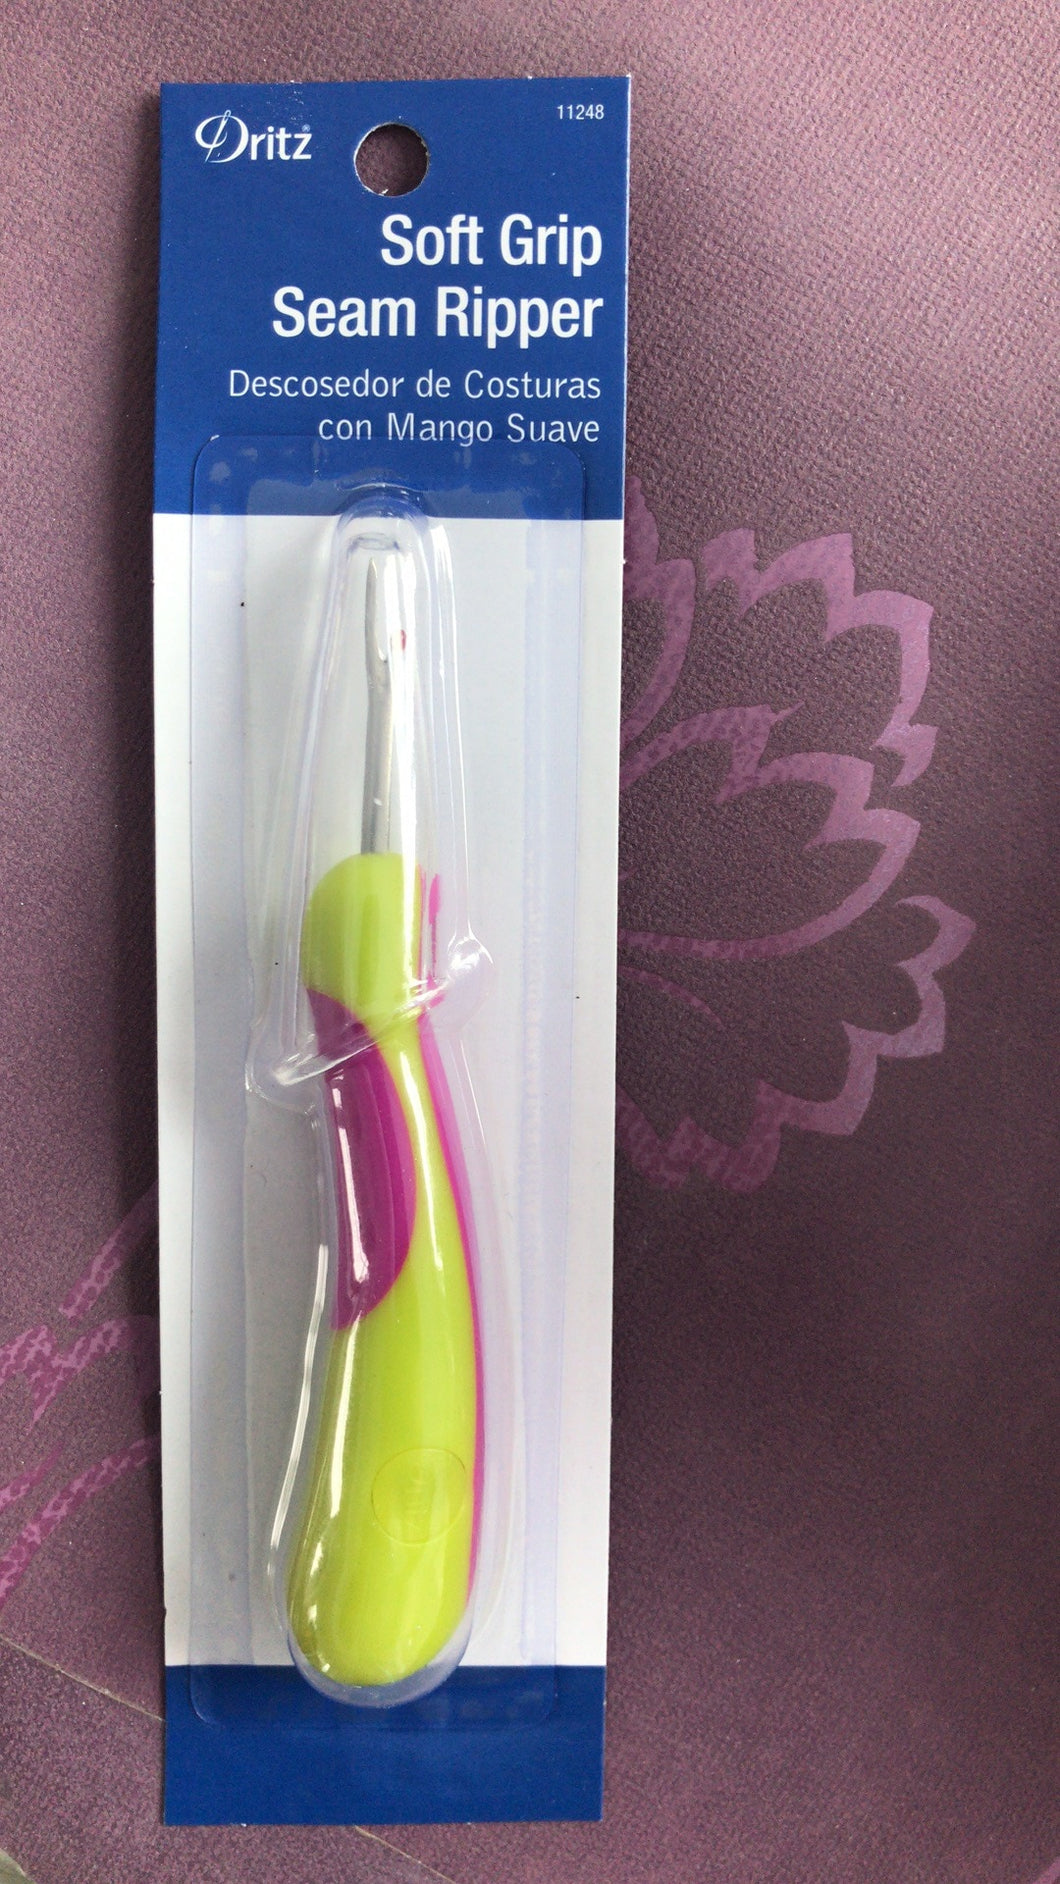 Dritz seam ripper soft grip